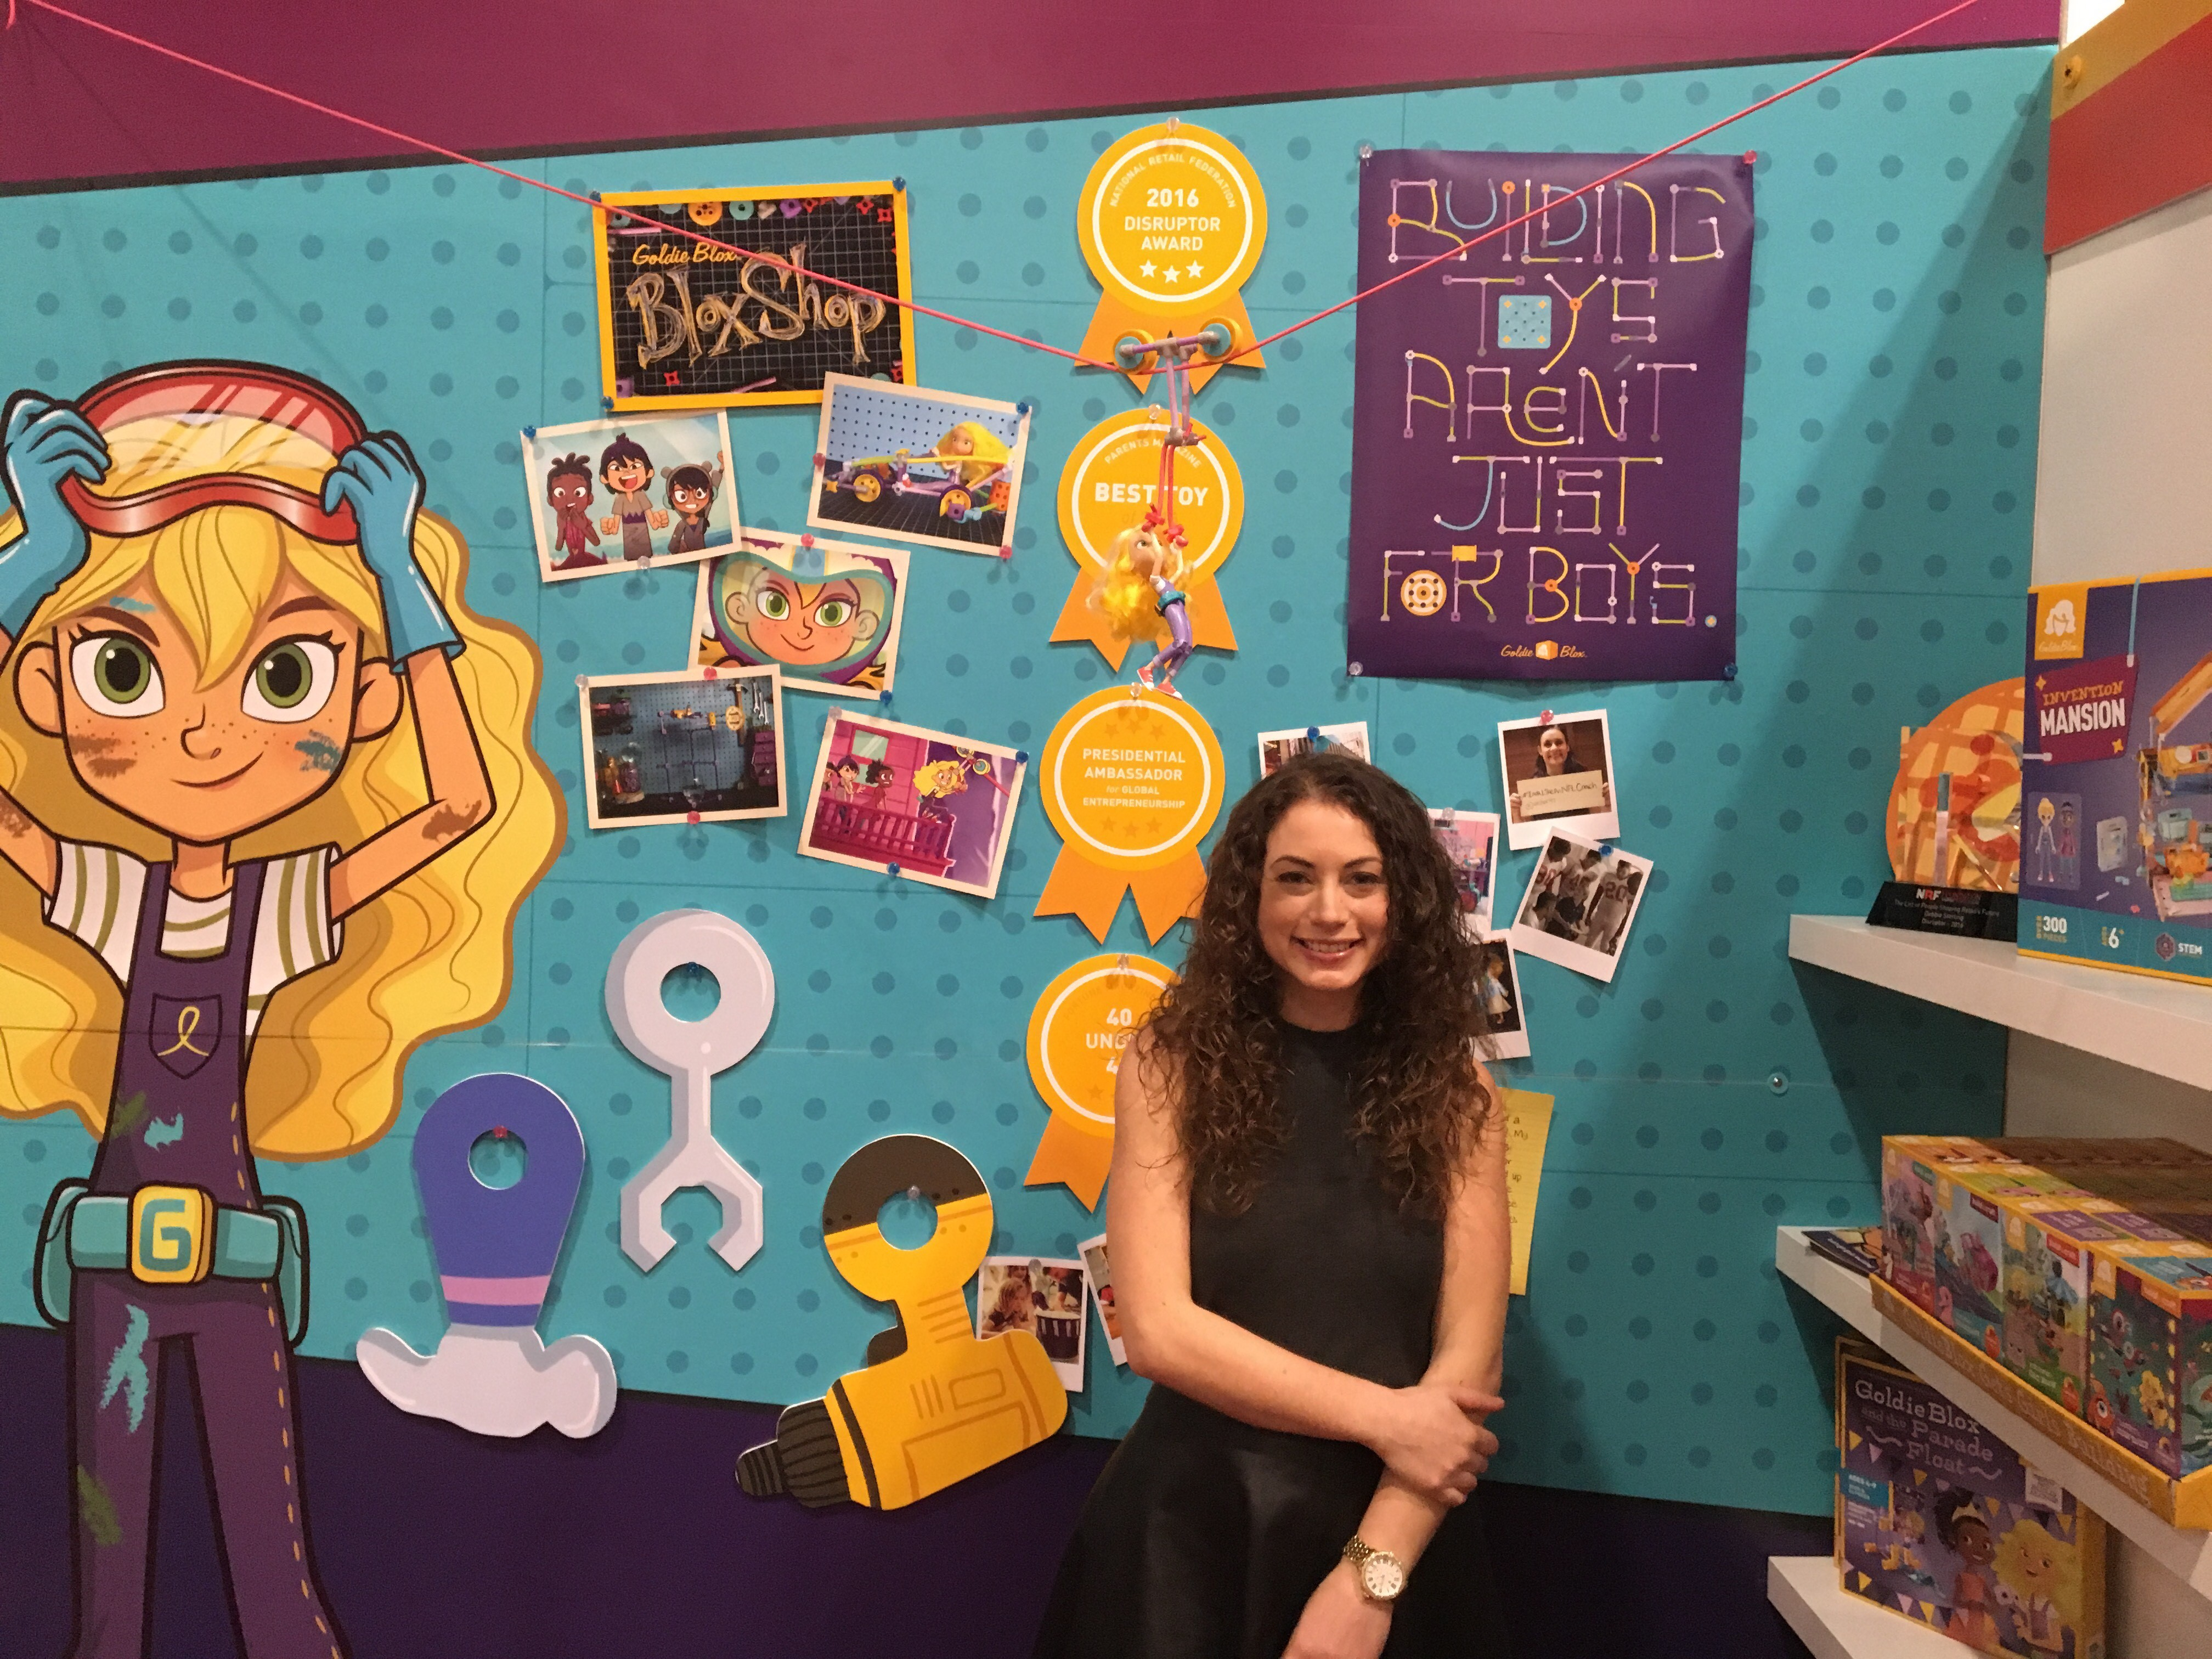 Debbie Sterling, founder of GoldieBlox, stands at the toy maker's booth at the New York Toy Fair in February 2016.